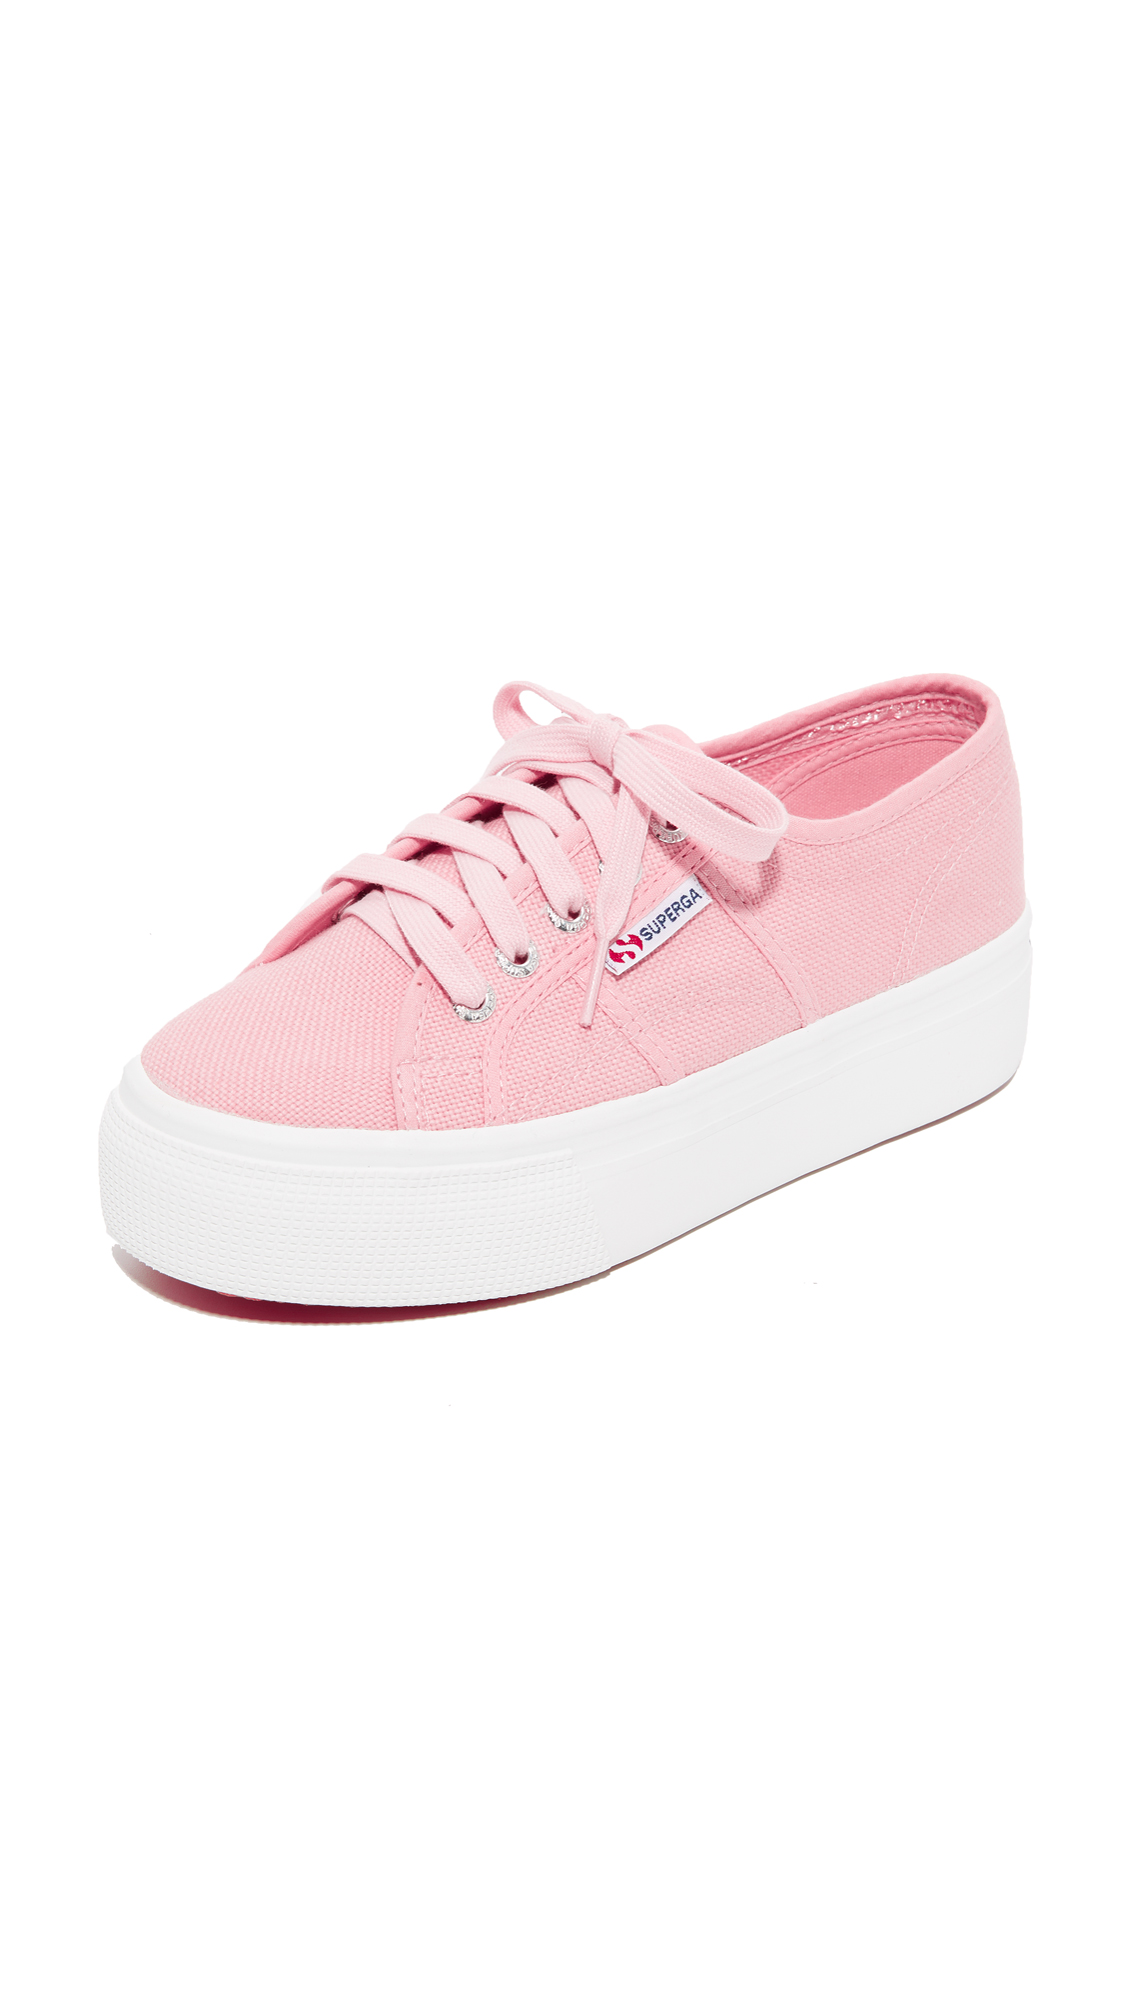 Superga 2790 Platform Sneakers - Vintage Light Pink